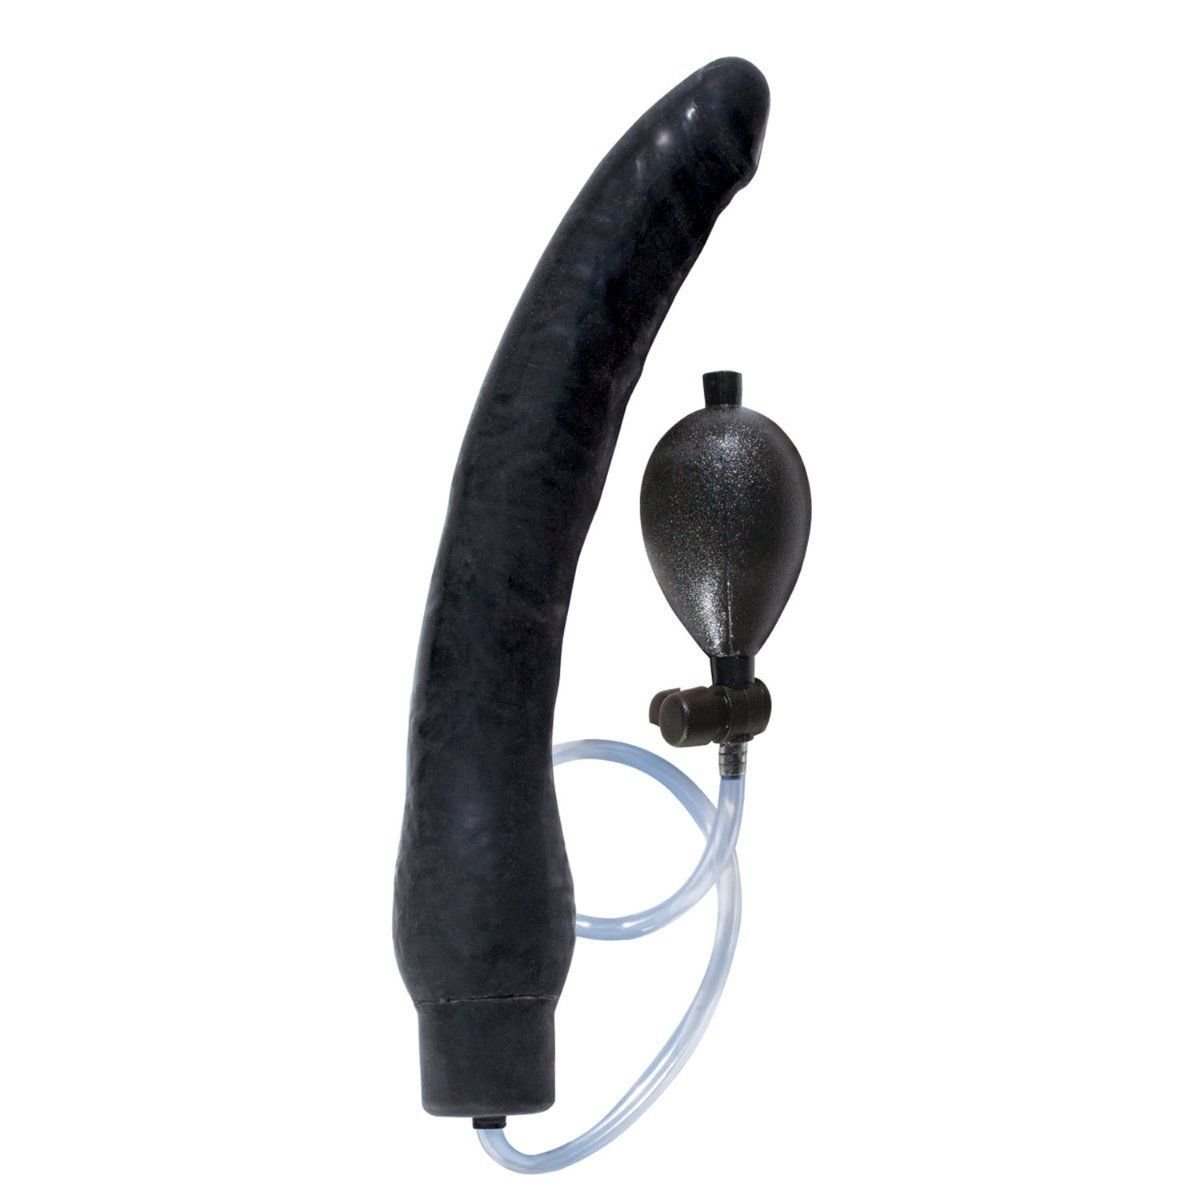 12'' Inflatable Expendable Dong Dildo Cock Anal Sex Balloon Pump Butt Plug by Unknown